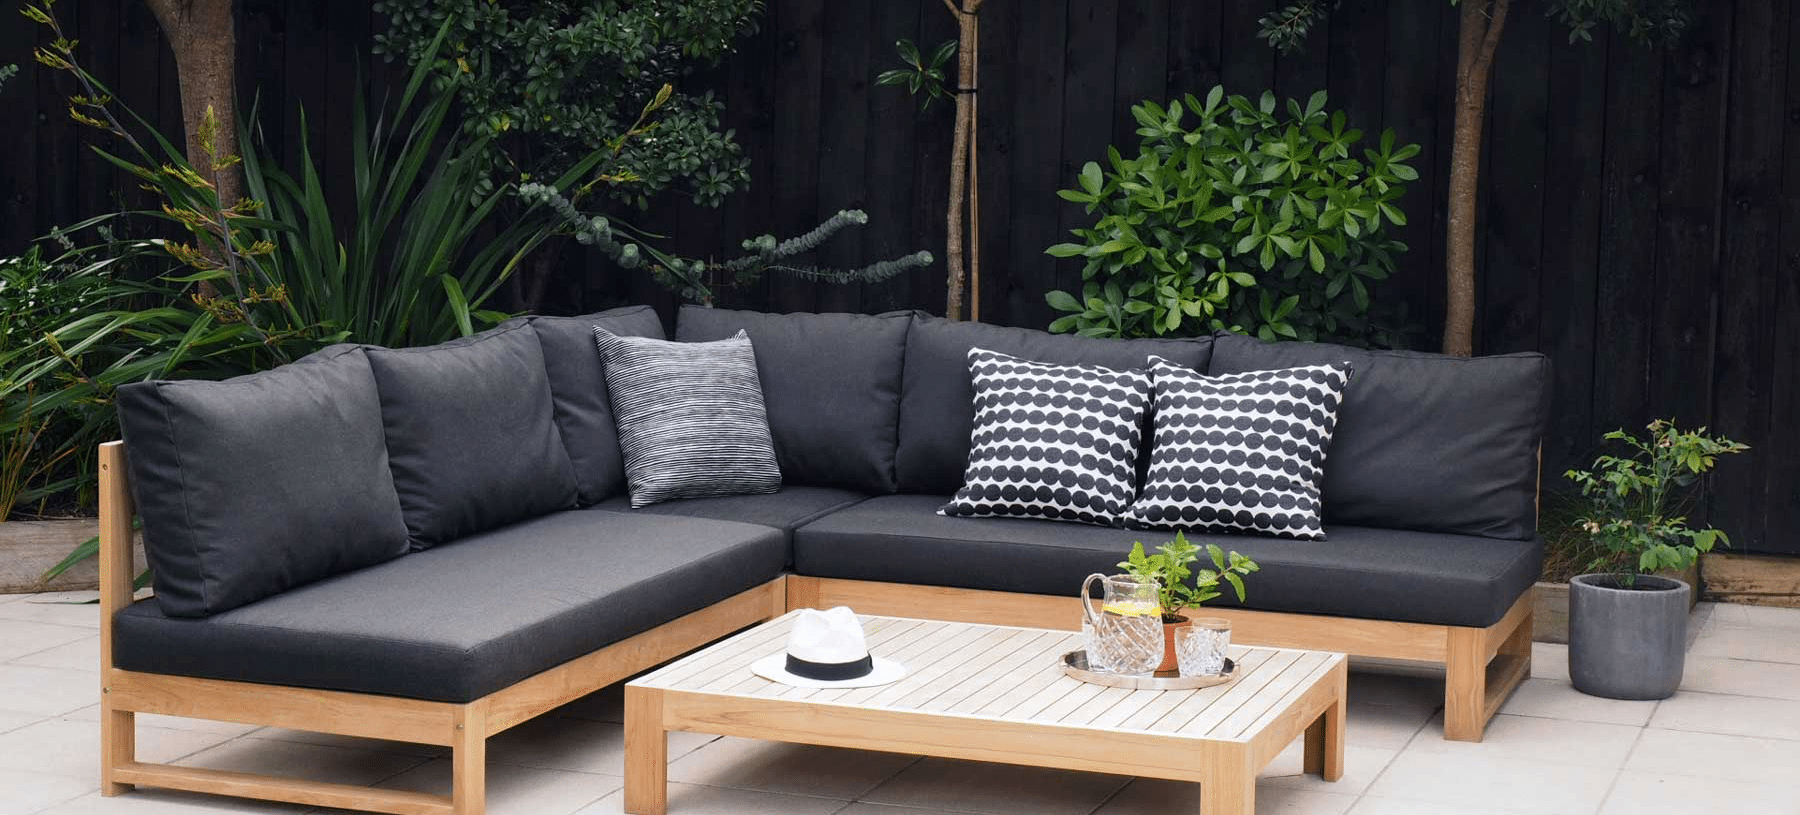 Outdoor Setting with Custom Squabs and Scatter Cushions